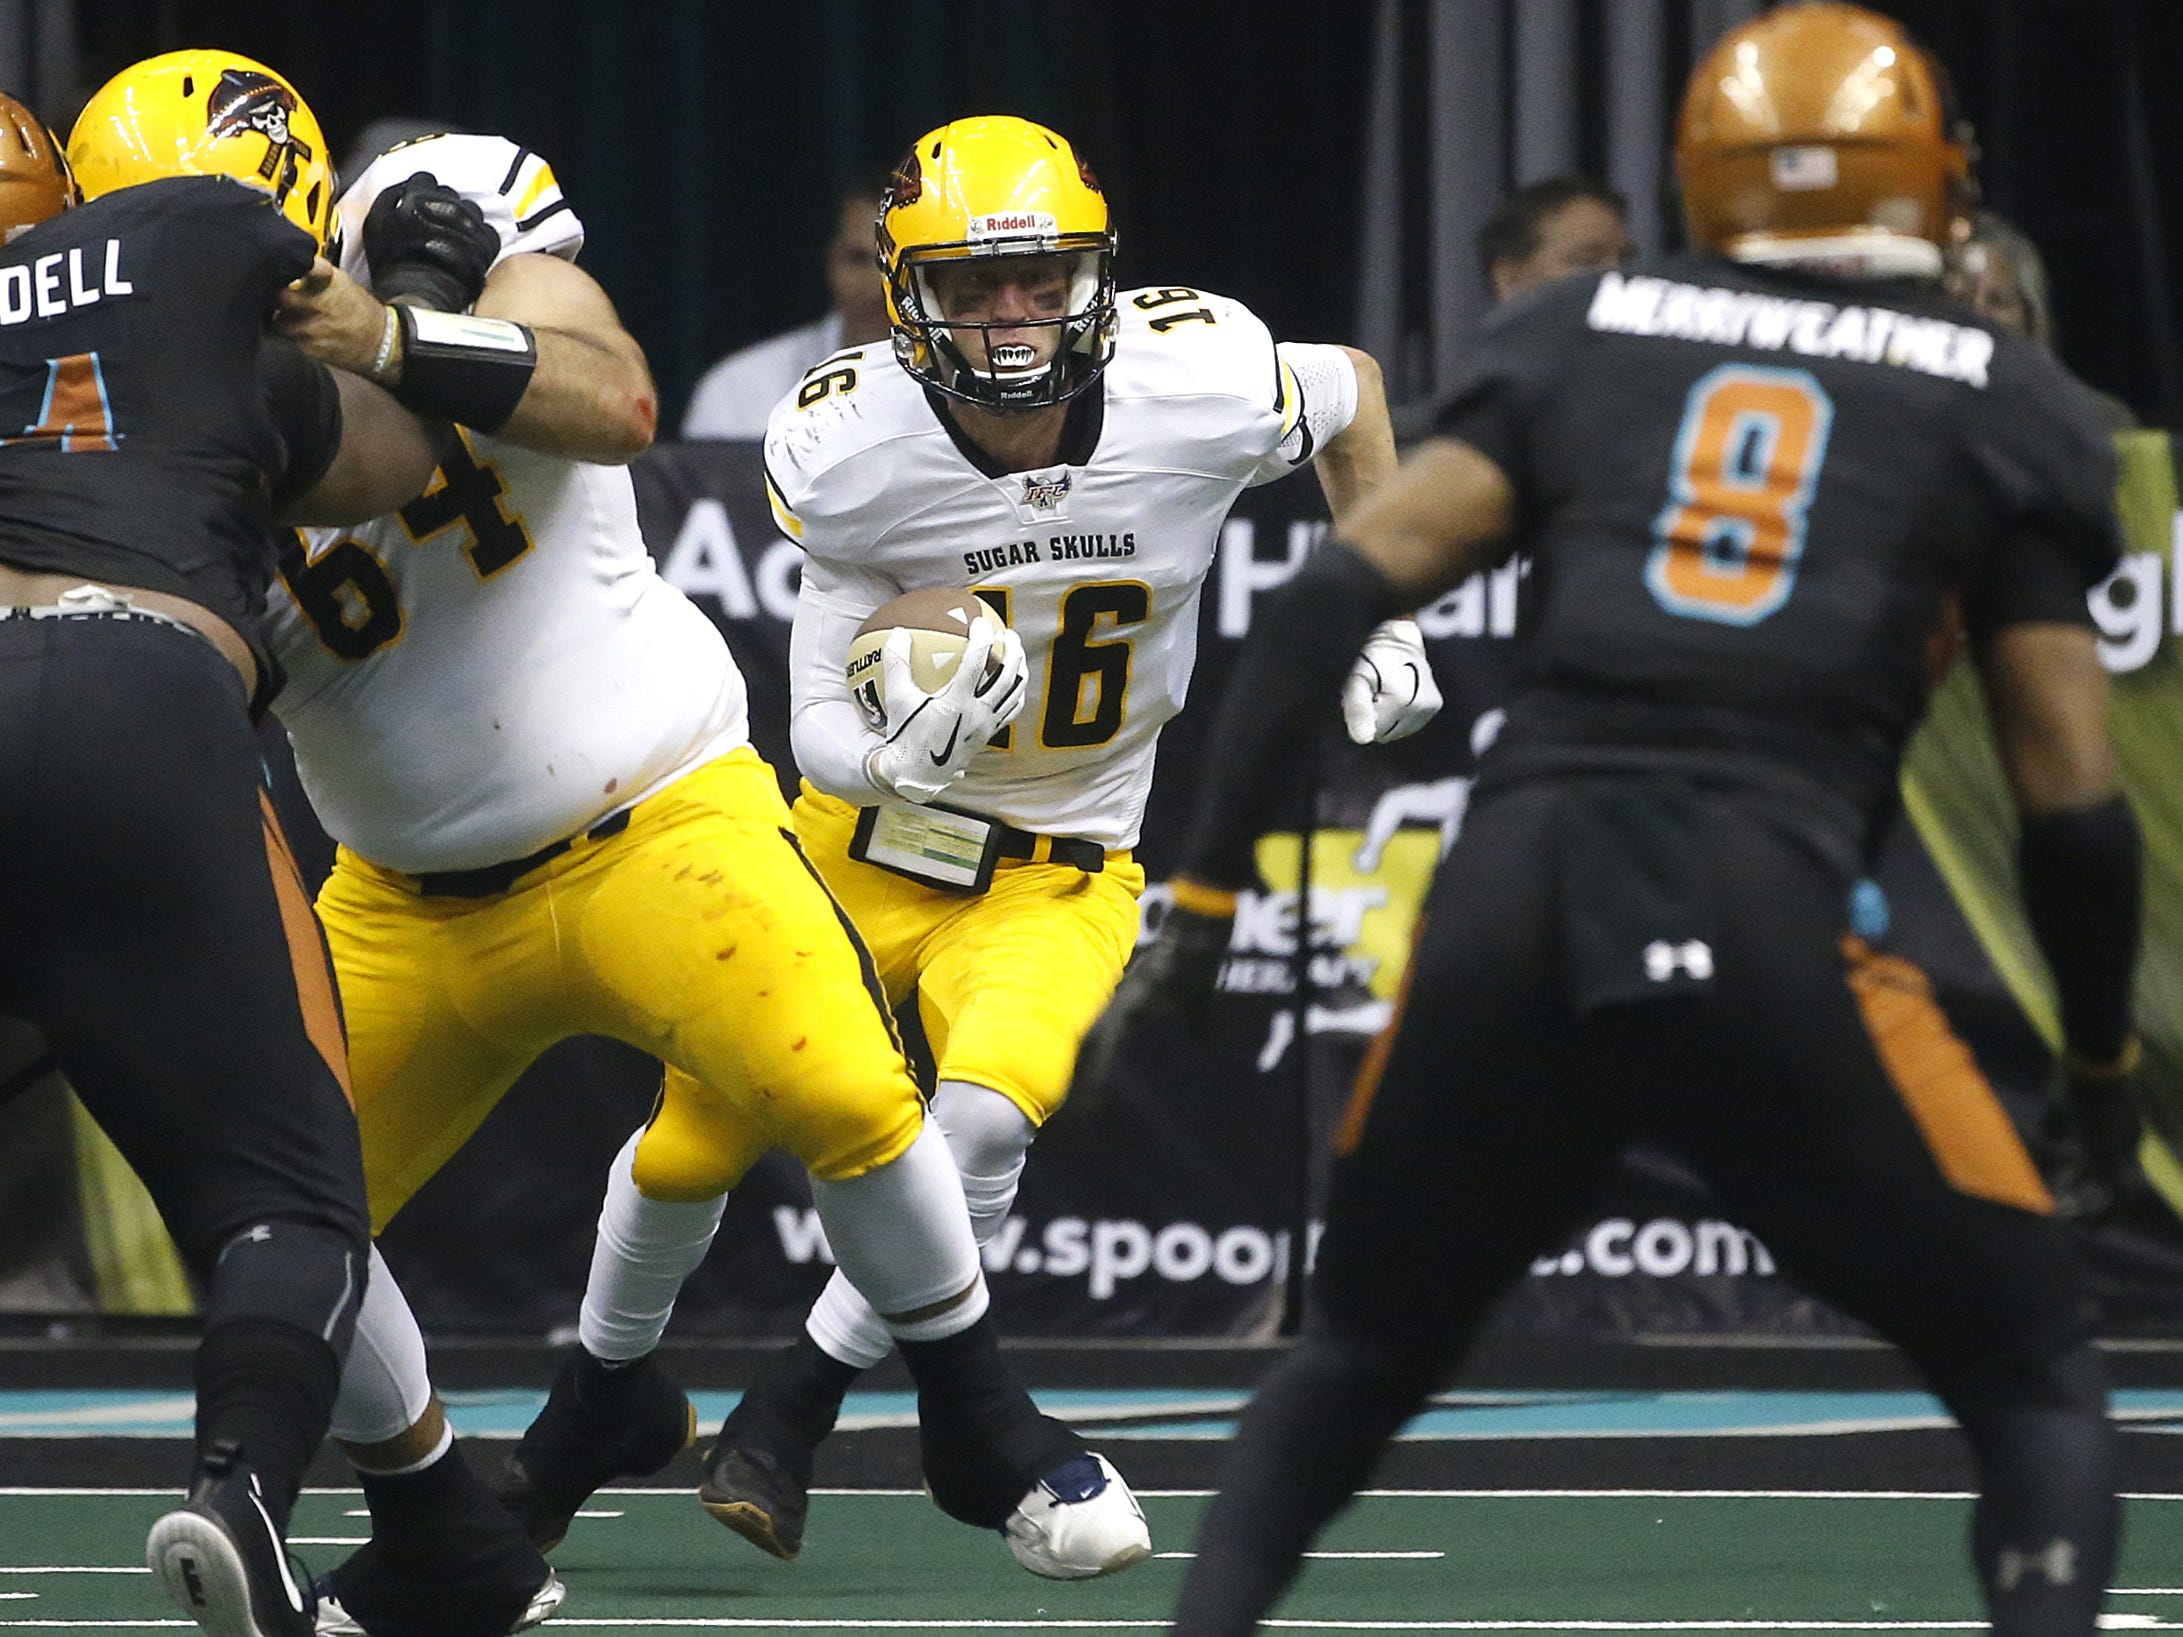 Sugar Skulls' Matt Behrendt (16) scrambles down the field against the Rattlers during the first half at Talking Stick Resort Arena in Phoenix, Ariz. on March 16, 2019.